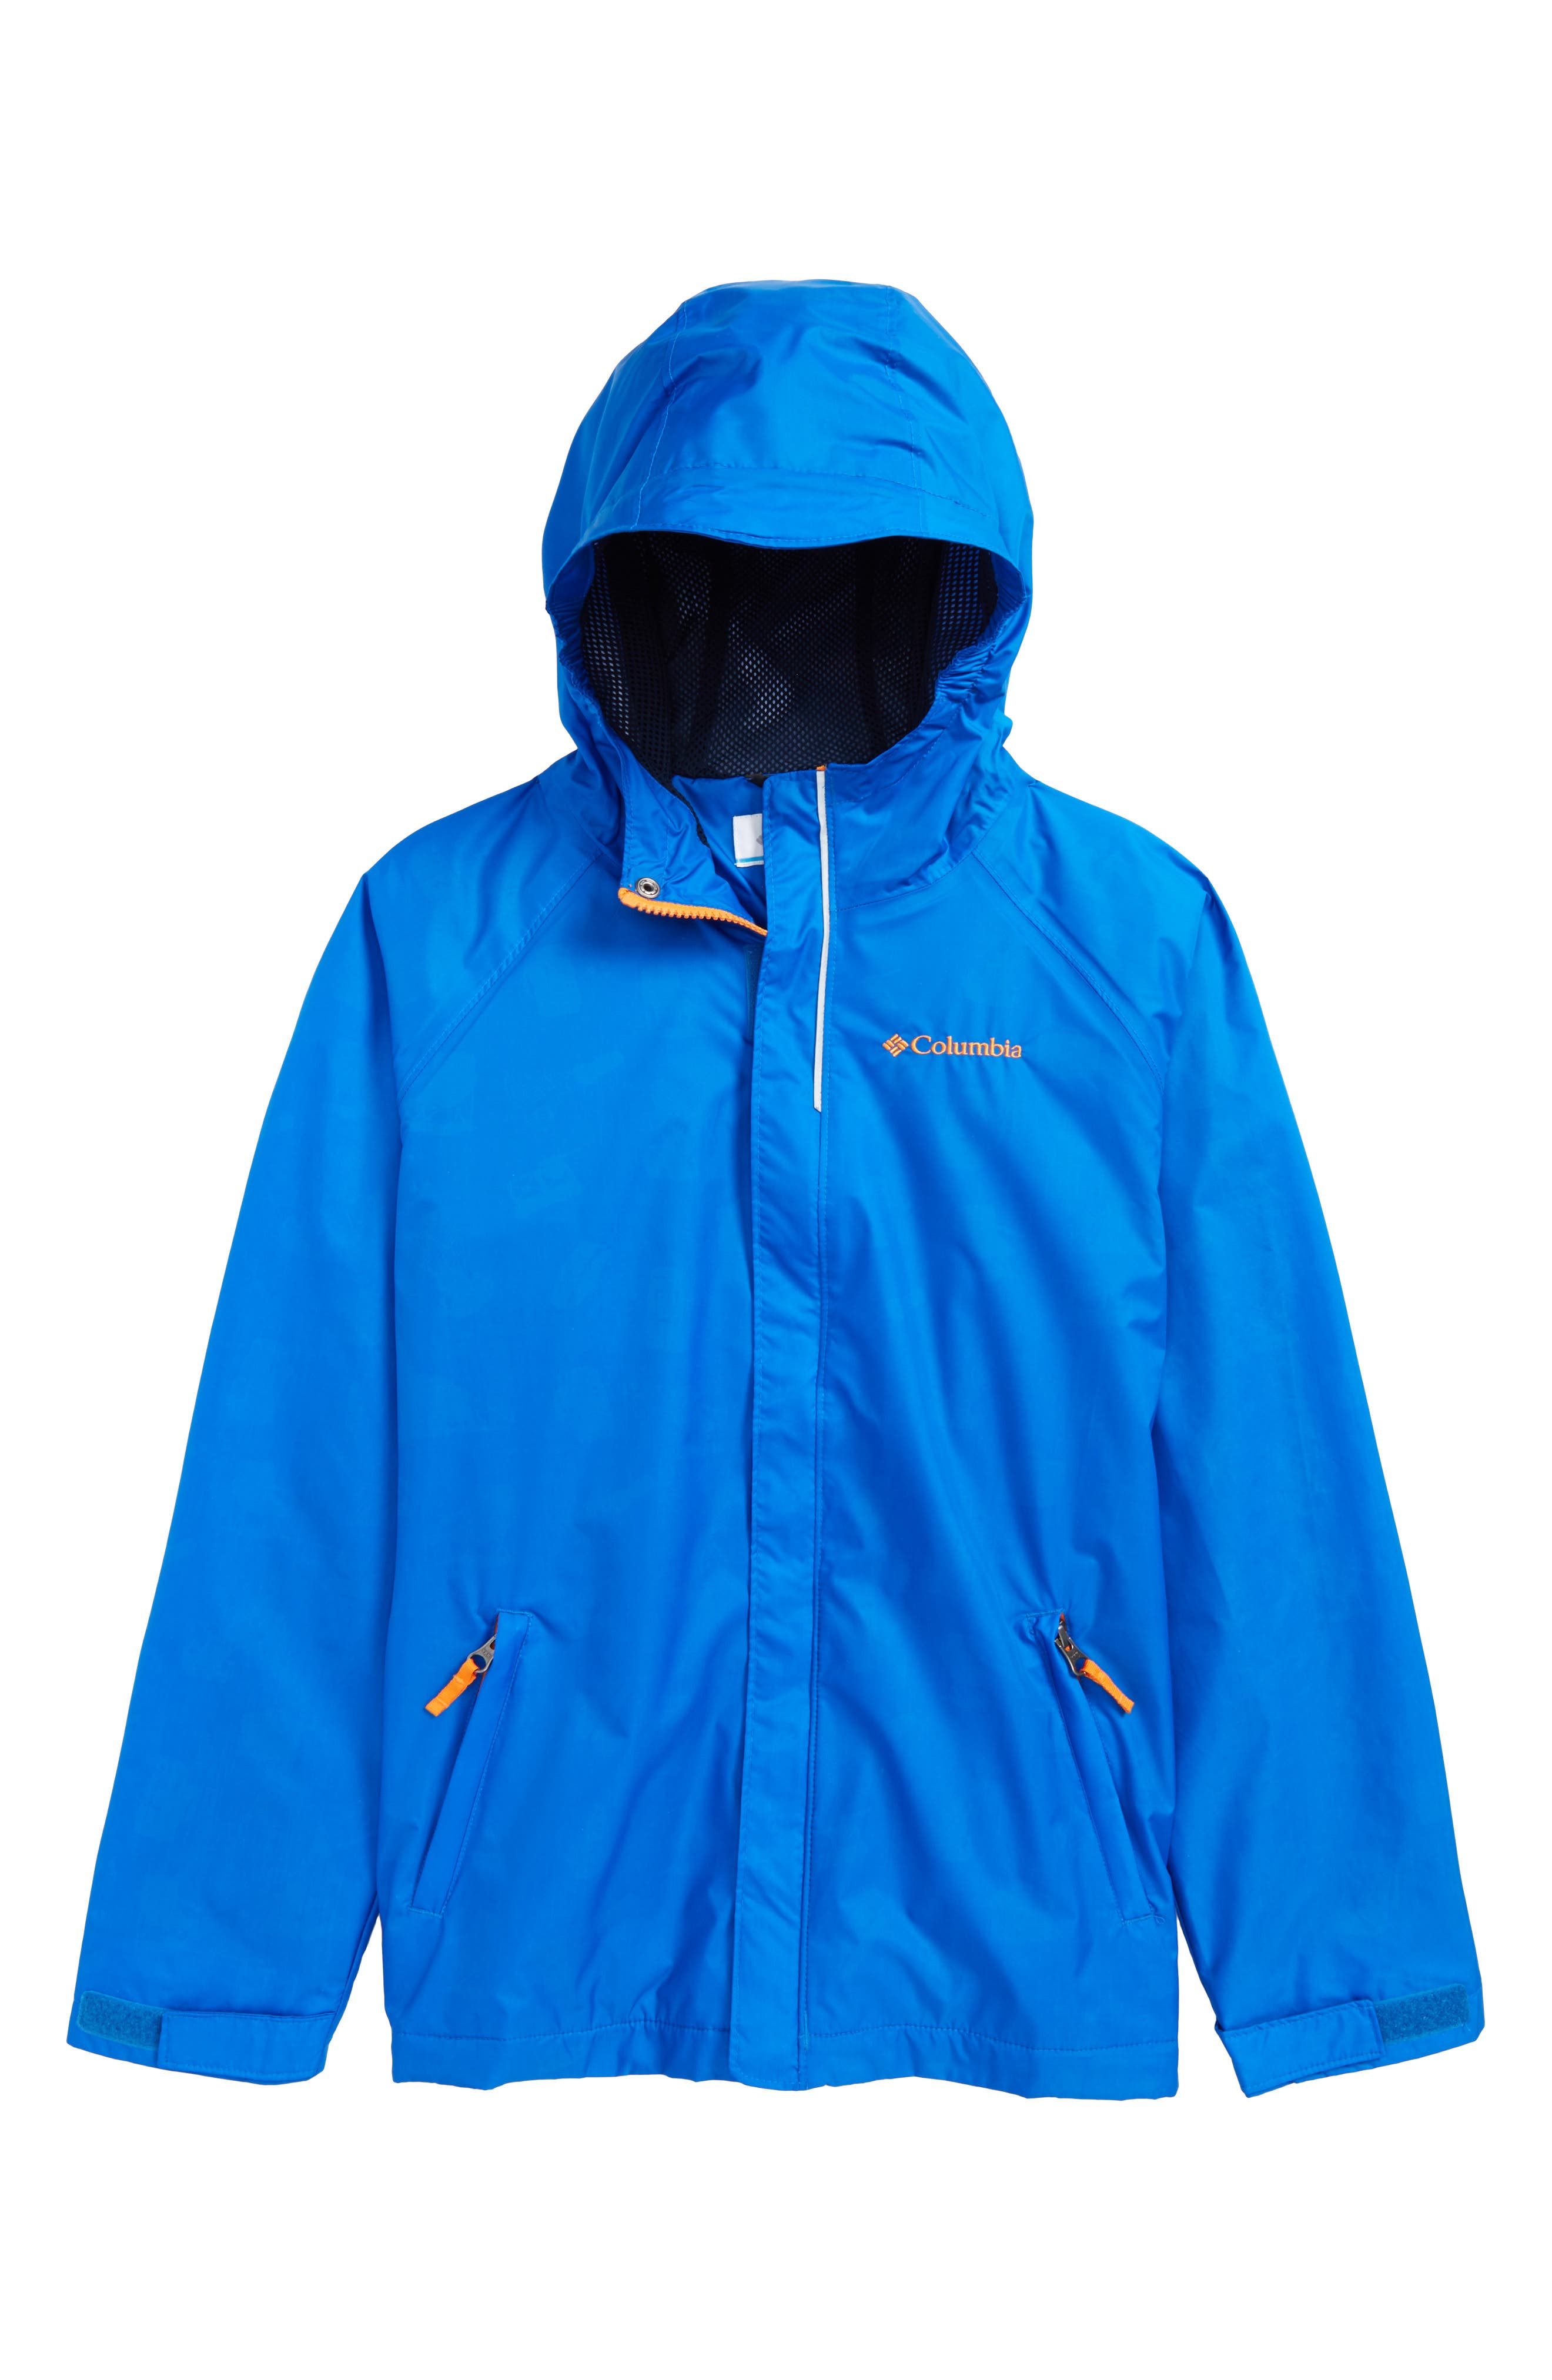 Alternate Image 1 Selected - Columbia 'Fast & Curious™' Waterproof Hooded Jacket (Little Boys & Big Boys)